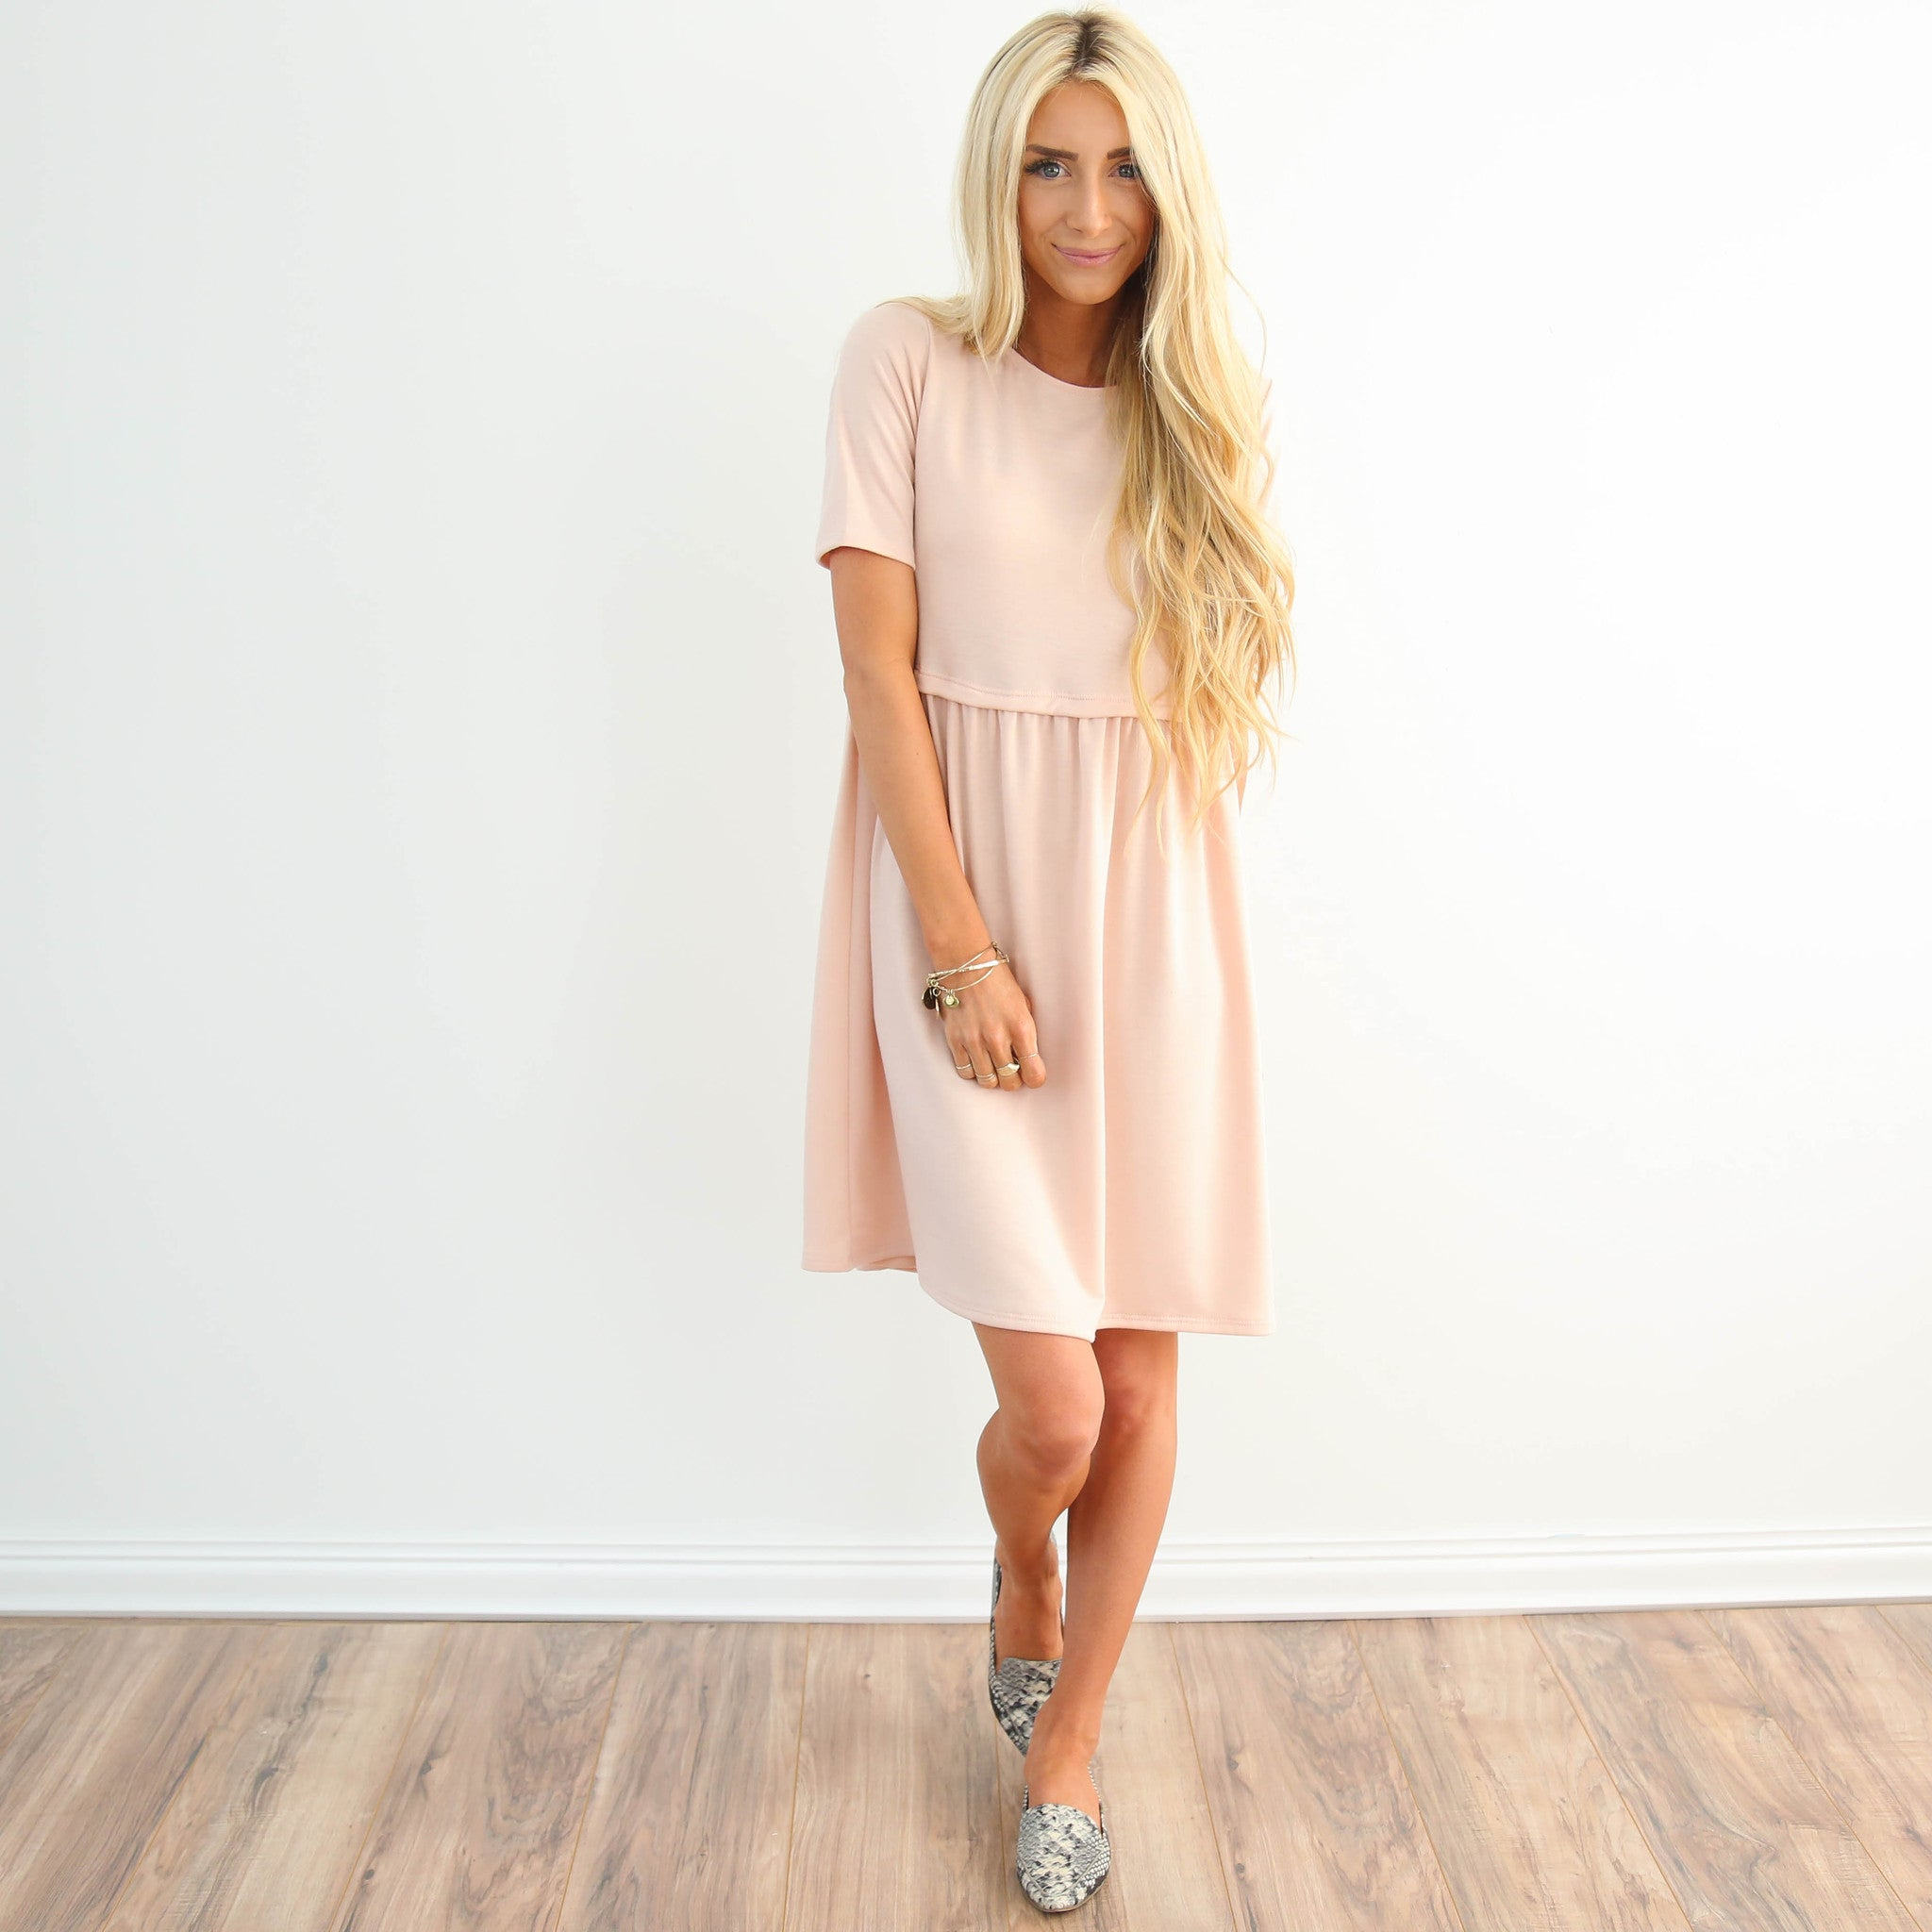 Soph Baby Doll in Blush